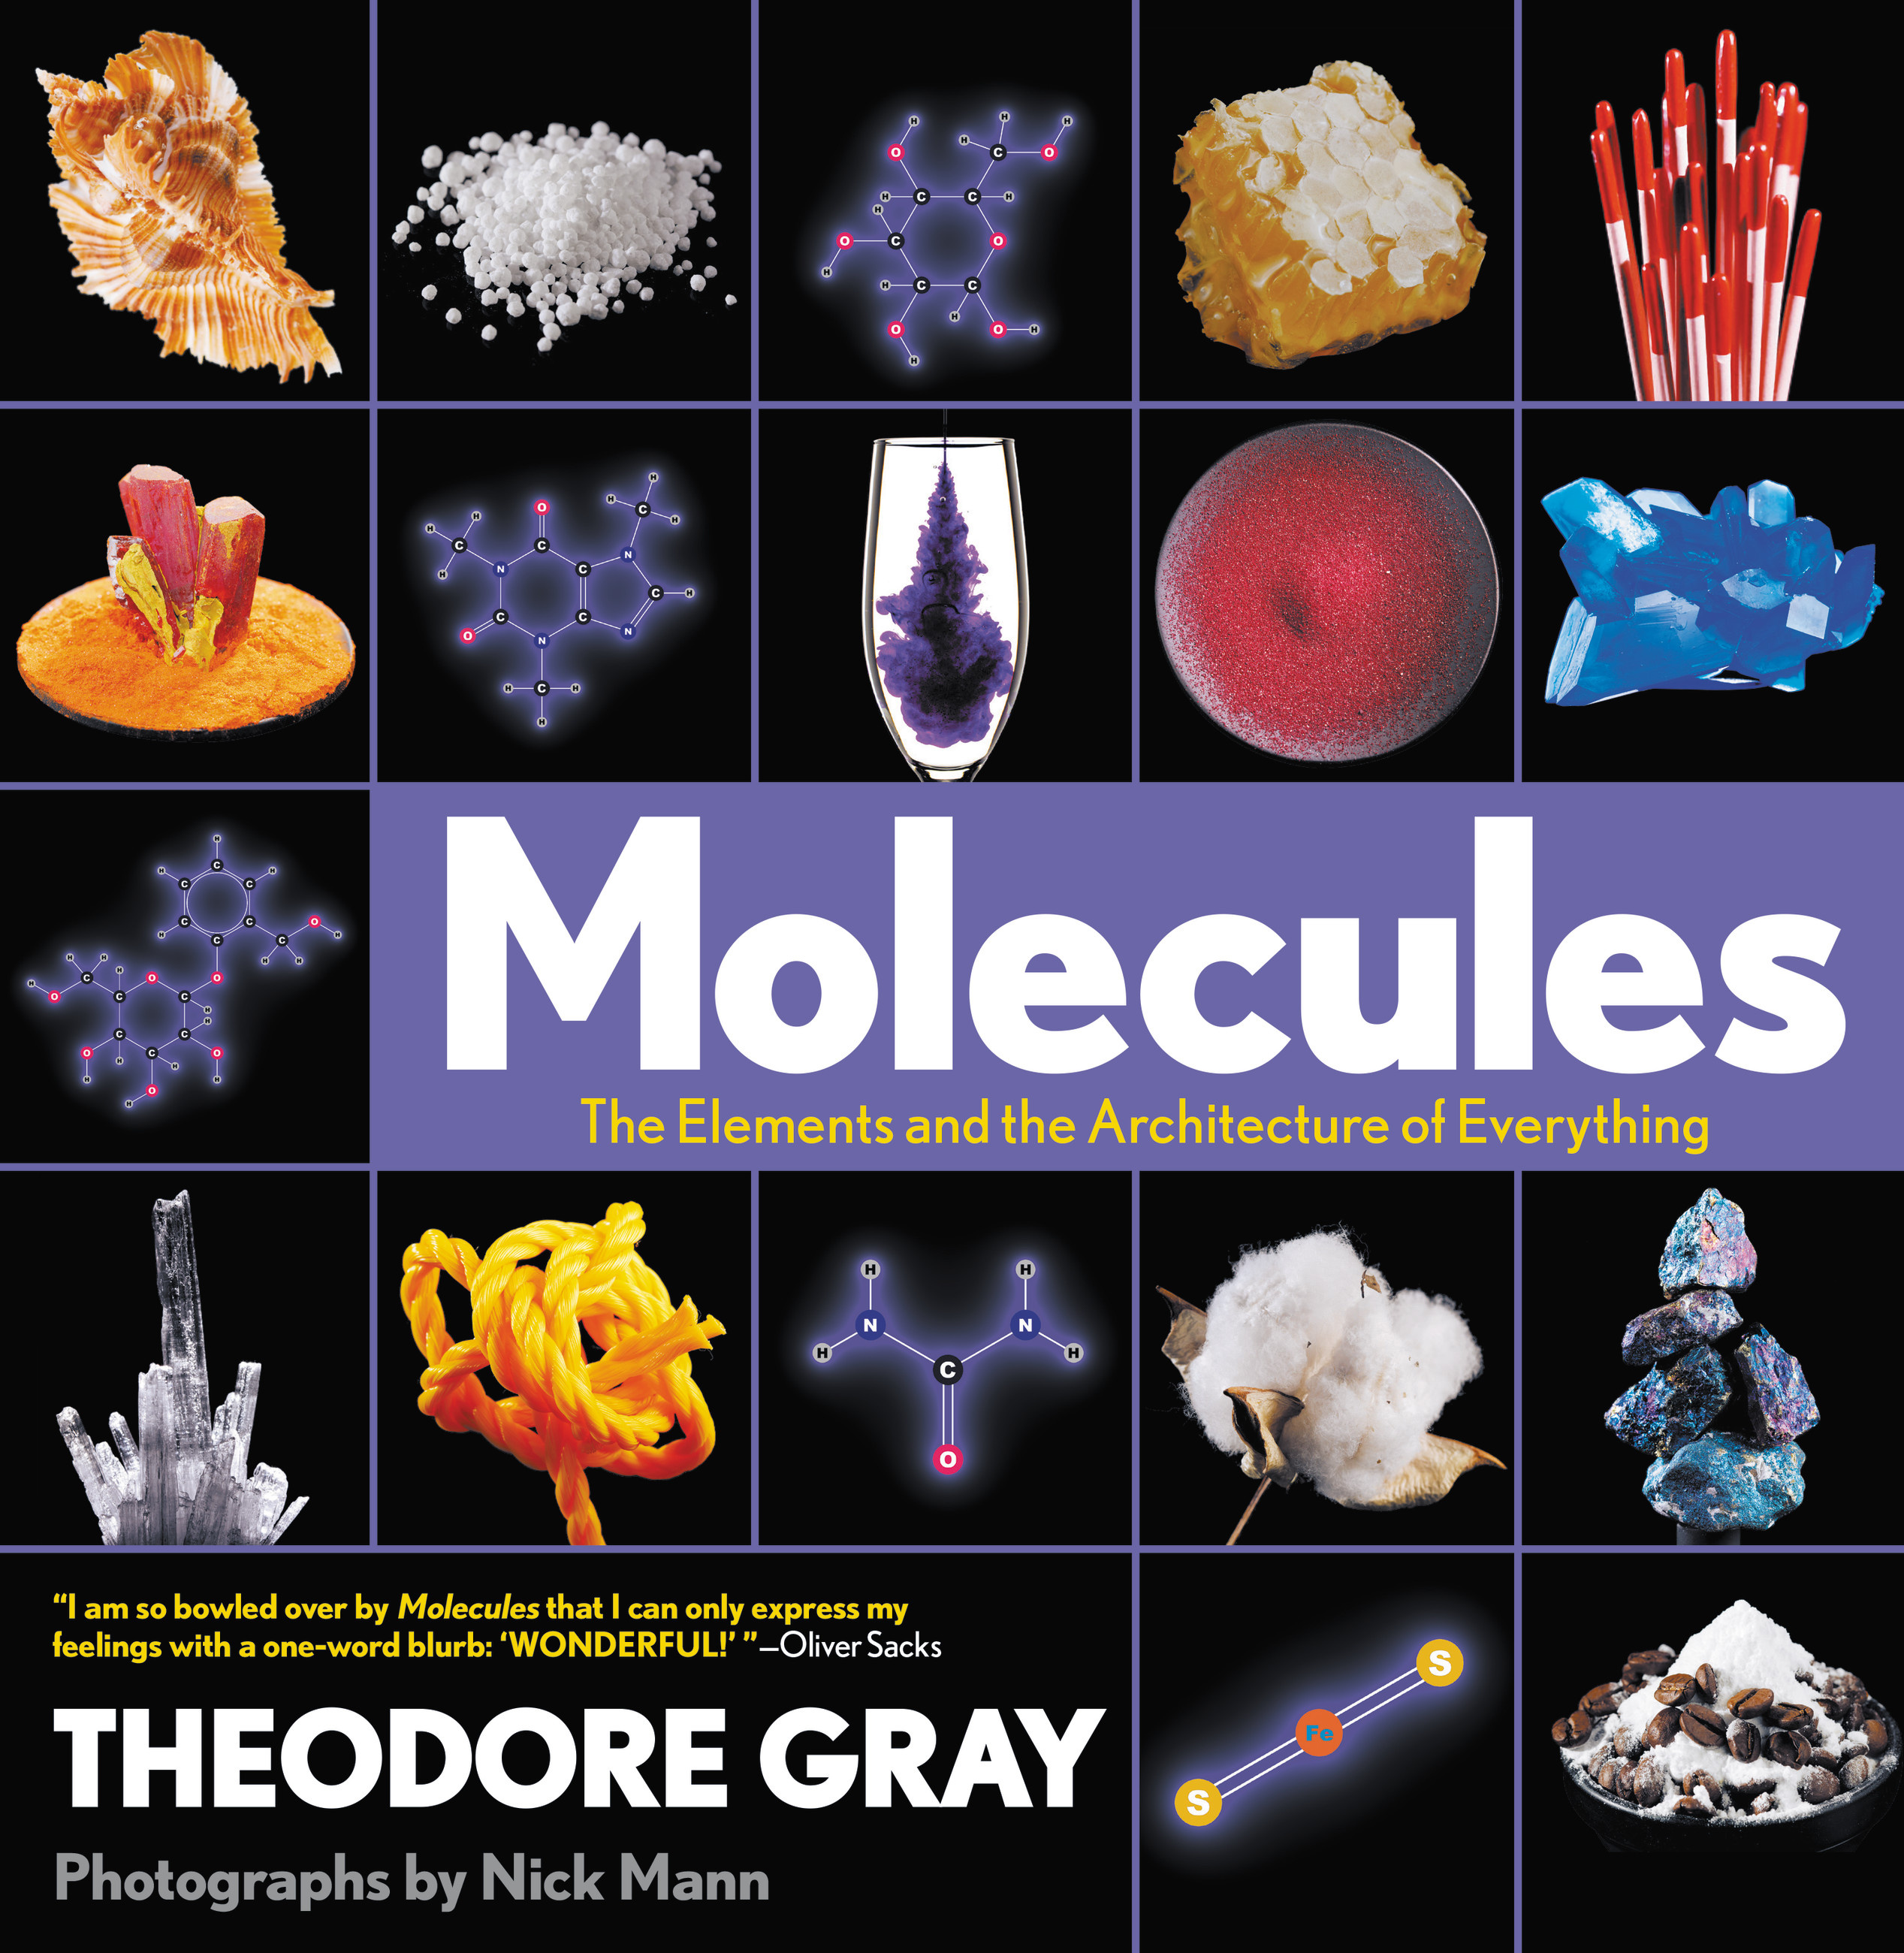 Molecules: The Elements and the Architecture of Everything by Theodore Gray, ISBN: 9780316480581